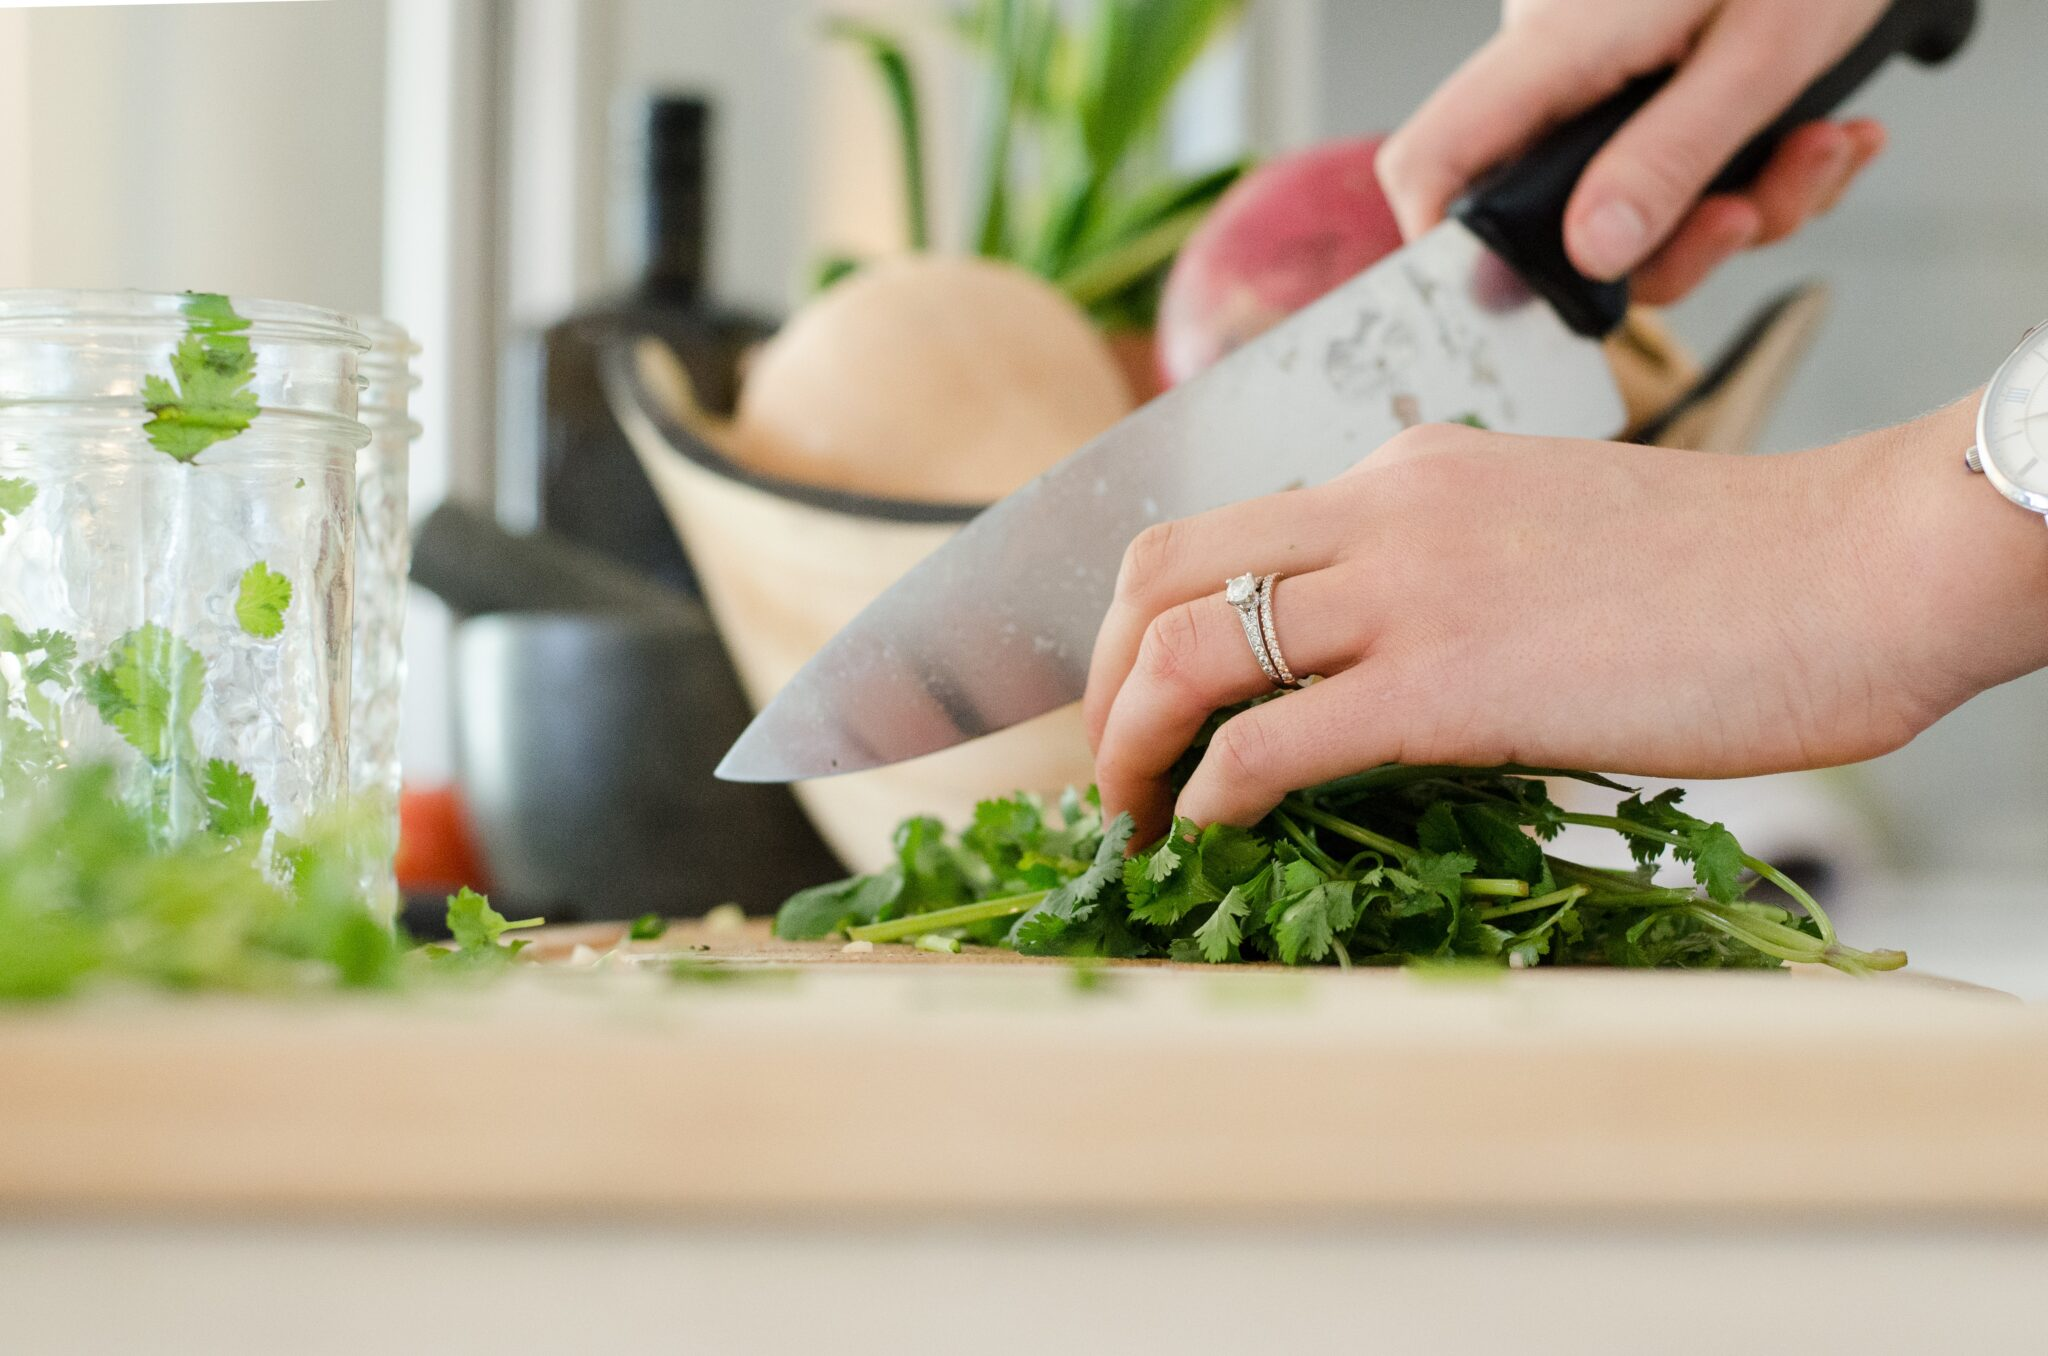 Hands holding a knife, chopping greens on a cutting board.